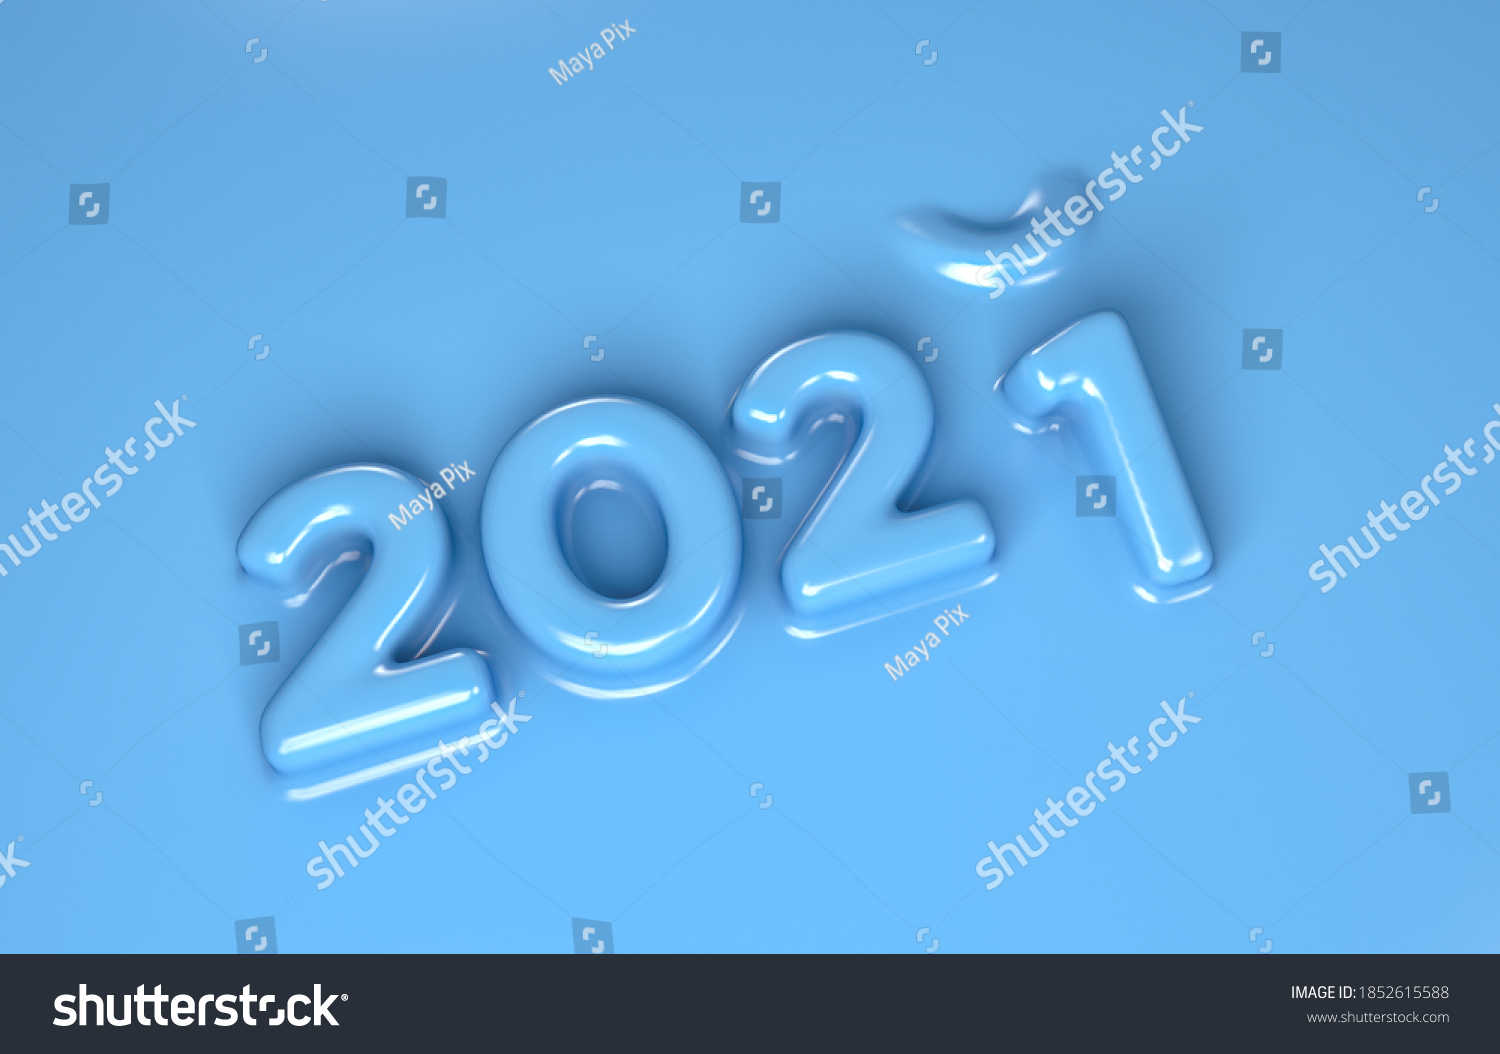 3D Render of 2020 turning to 2021 in blue molded plastic material